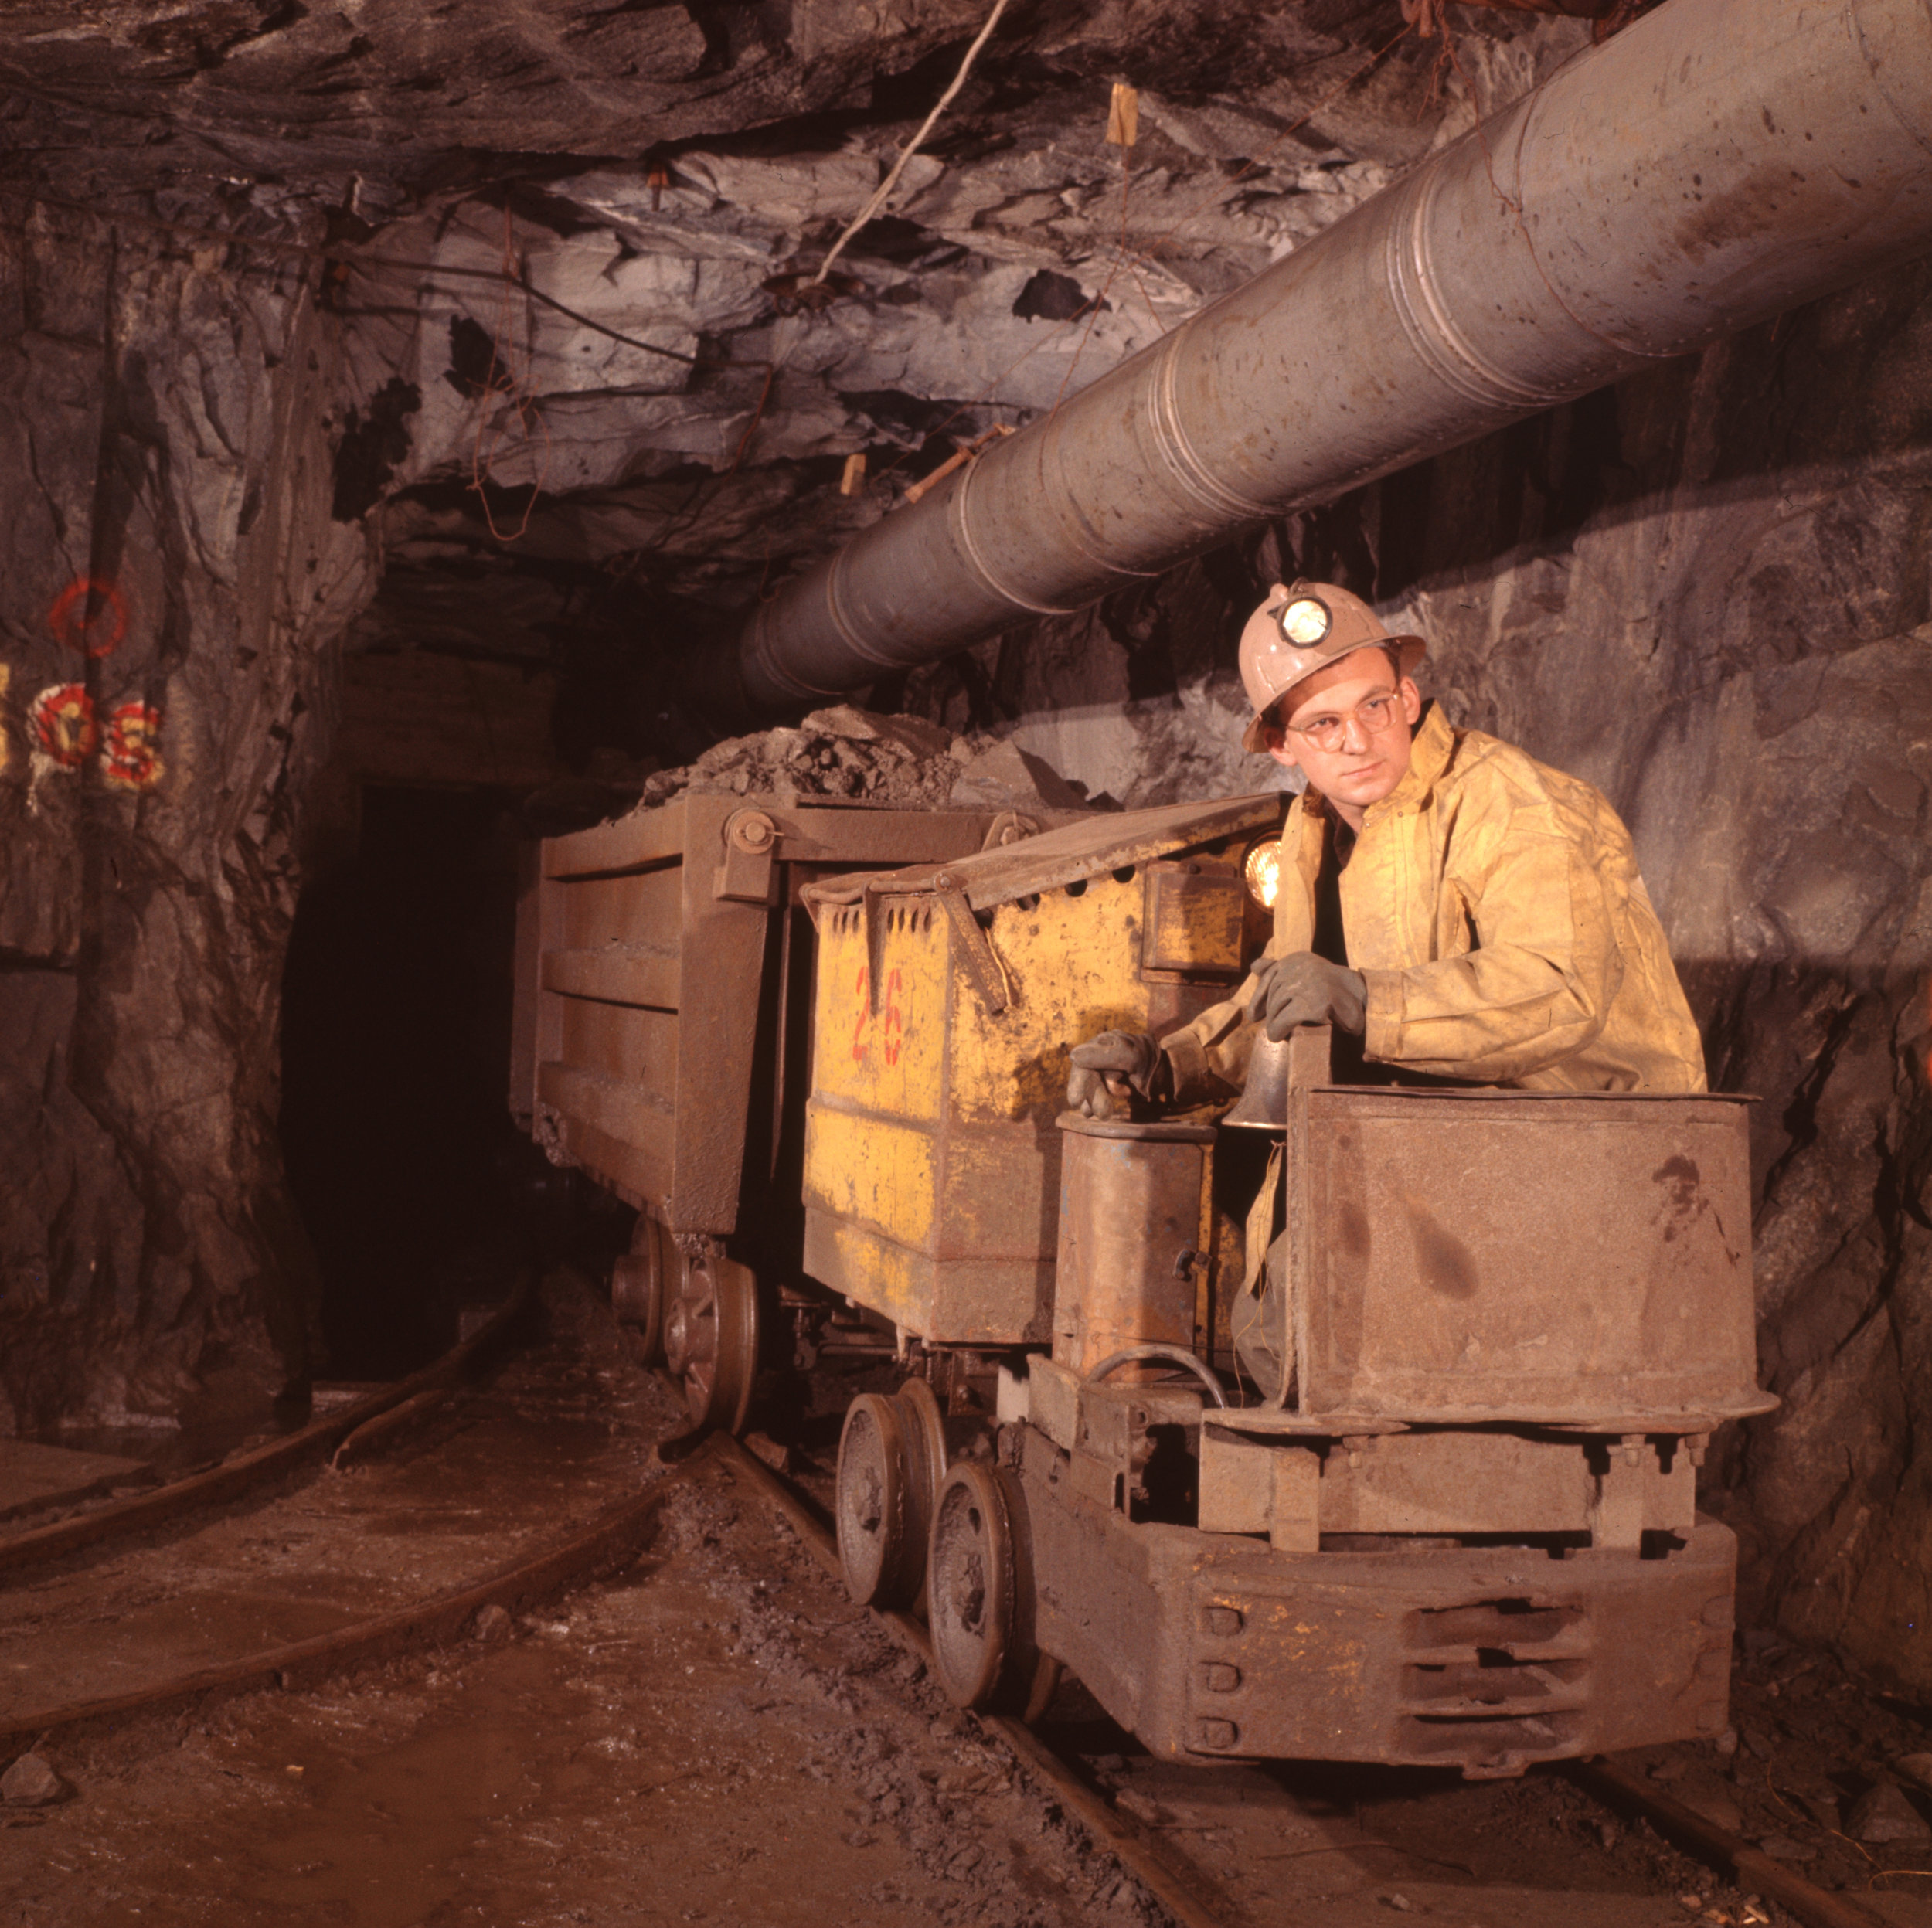 Trammer at a junction in a base metals mine.